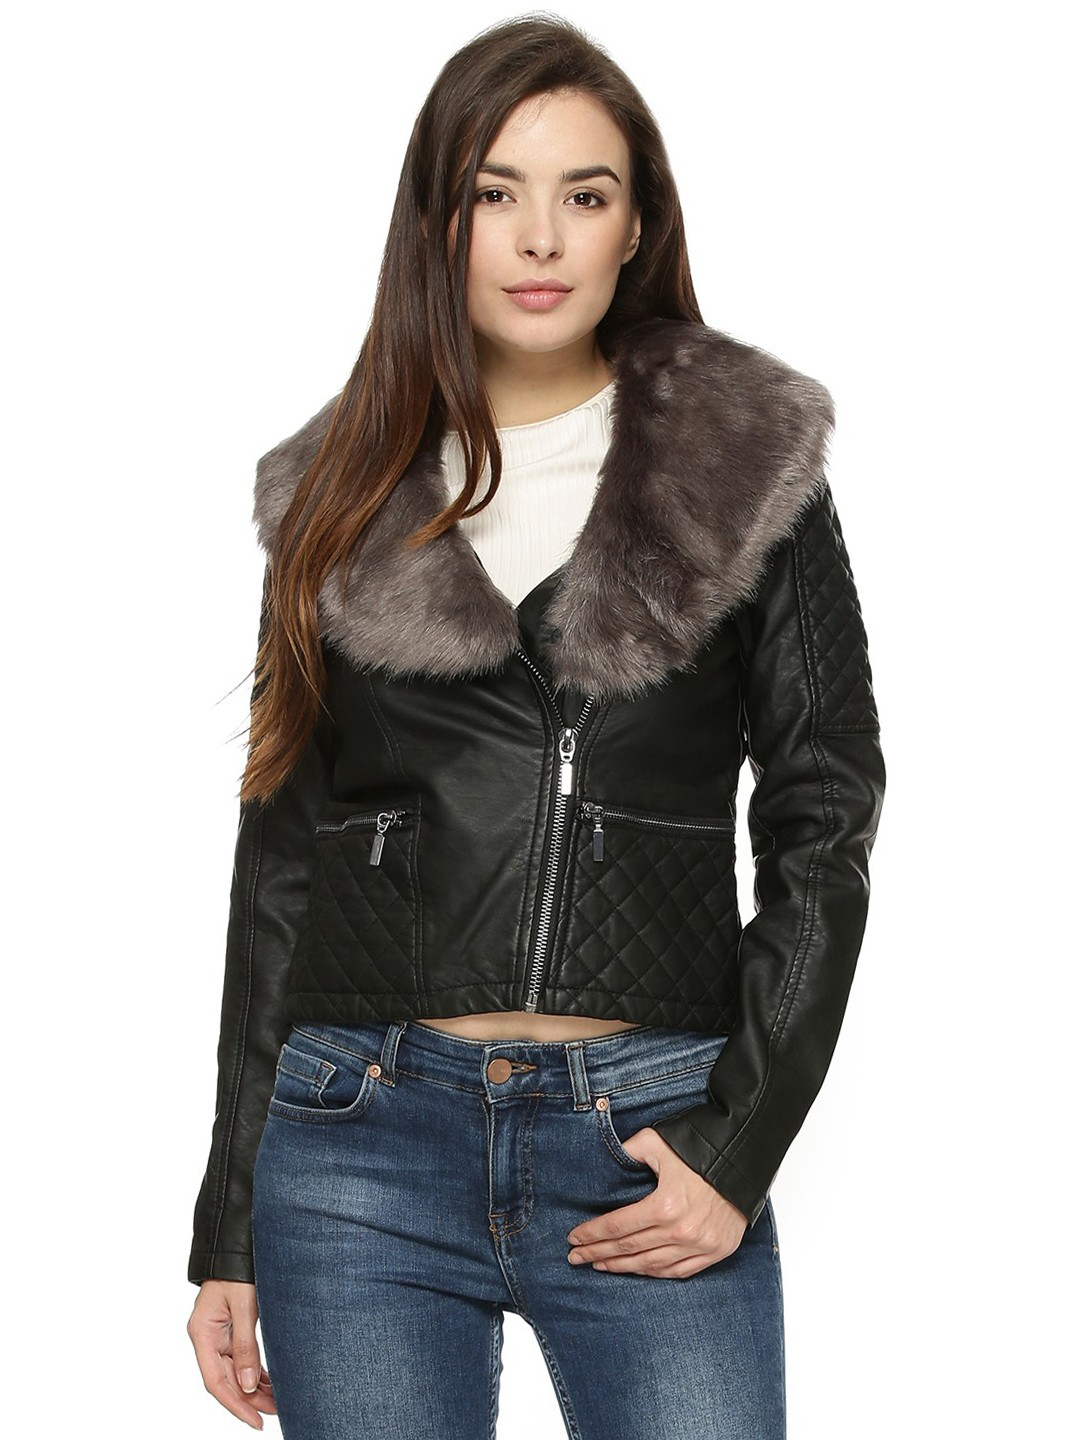 Buy leather jackets online in india